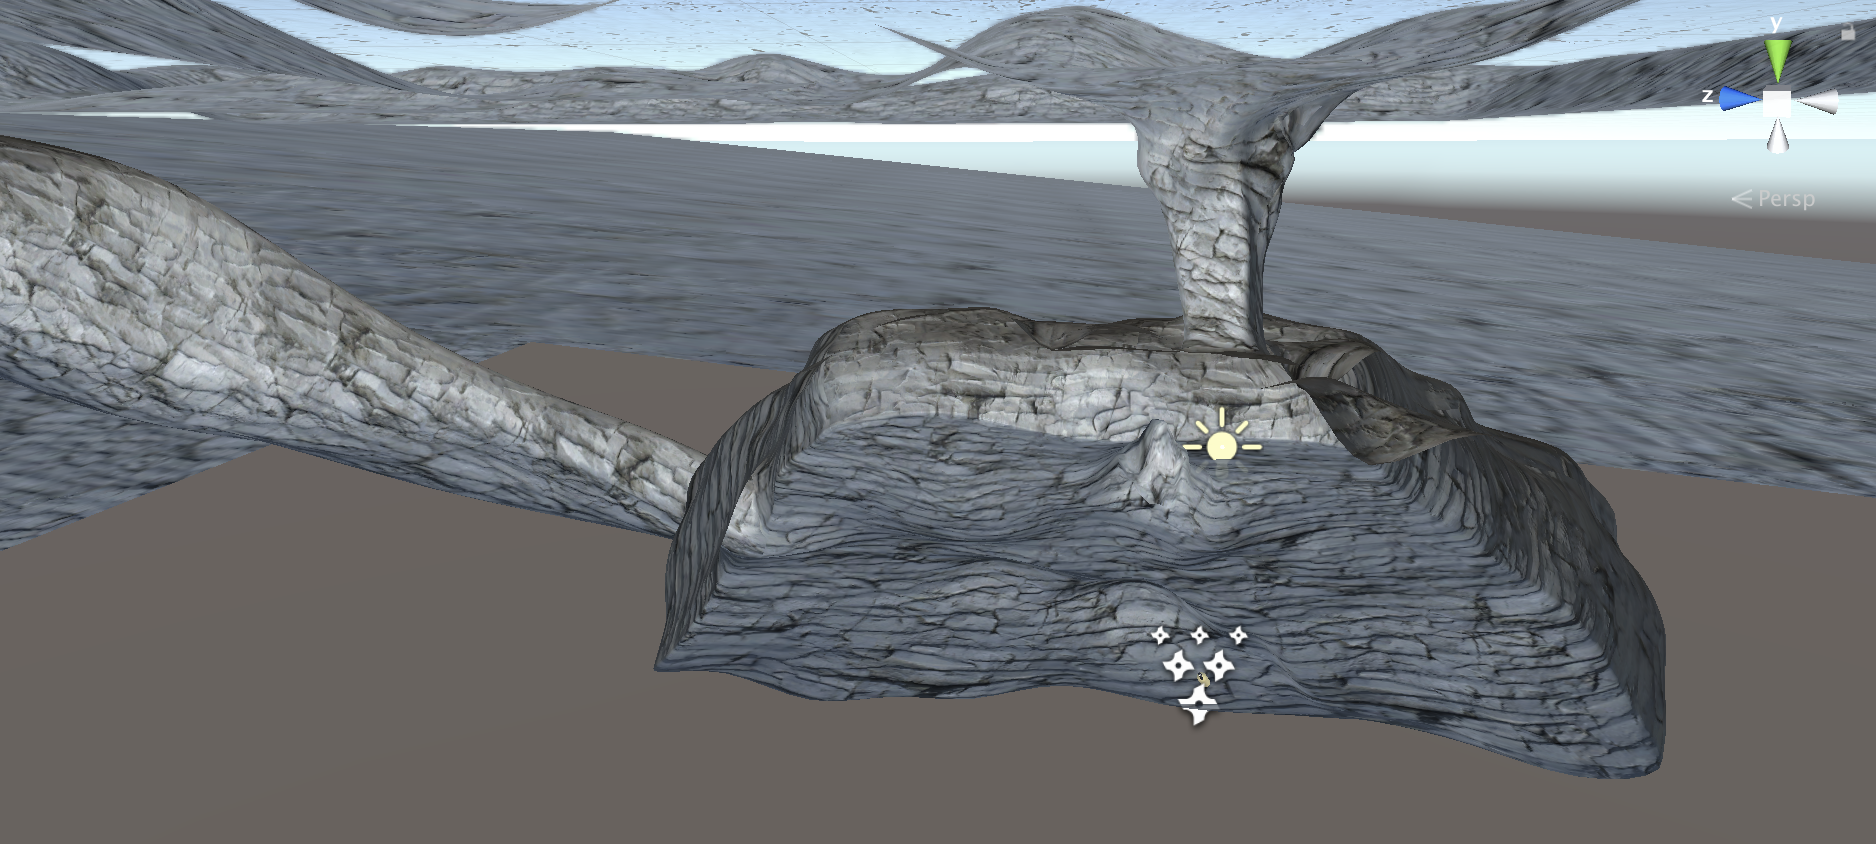 Overall shot of the world. A tunnel from the top is where players initially fall into, the cave below is the main environment to be explored to find objects. Another tunnel leads outward for the final escape to the surface.